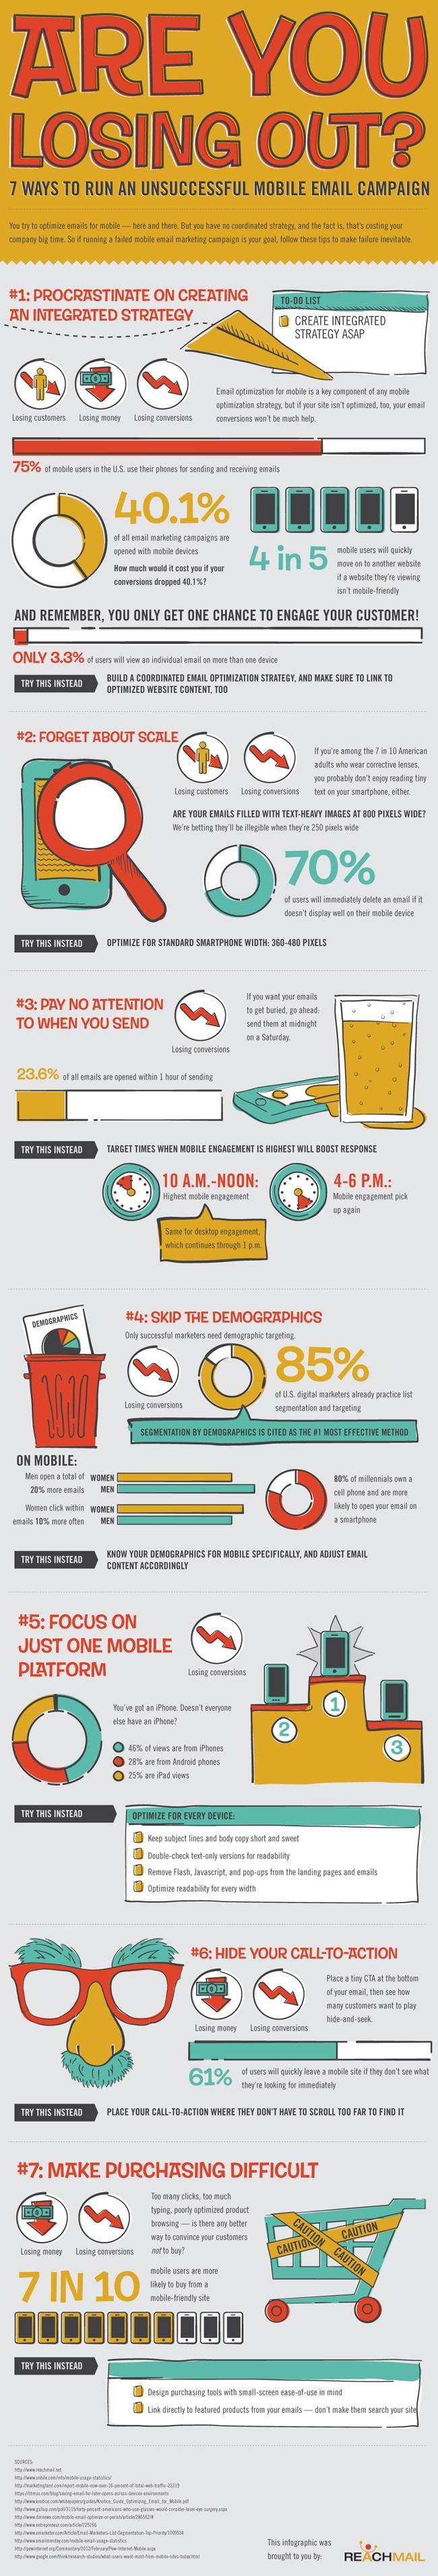 ReachMail_Infographic-e-mail-marketing-campagne